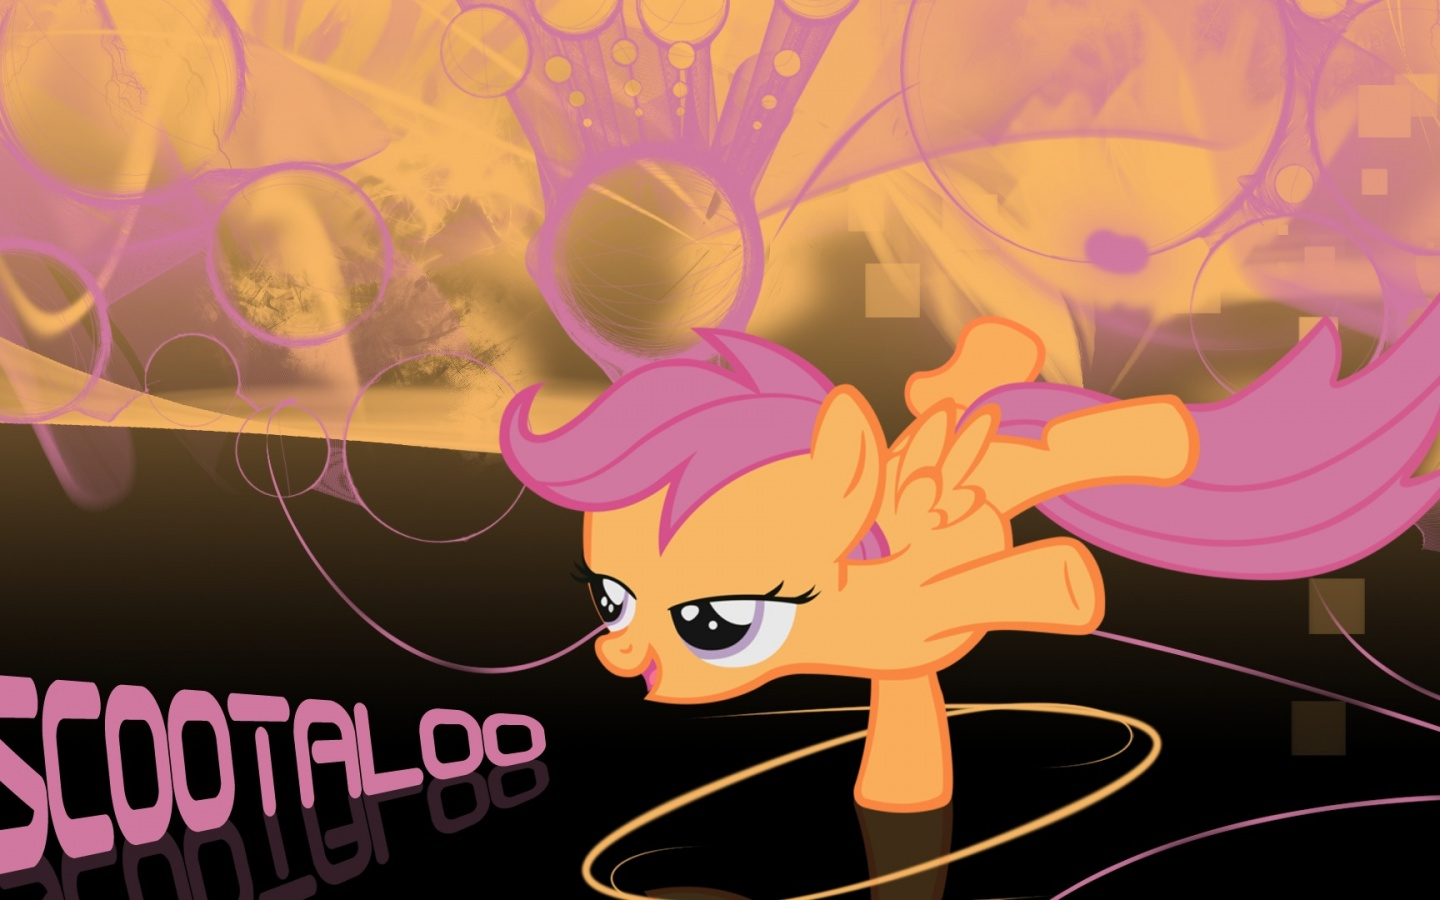 1440x900 Scootaloo, my little pony friendship is magic, mlp, cartoon, cartoons